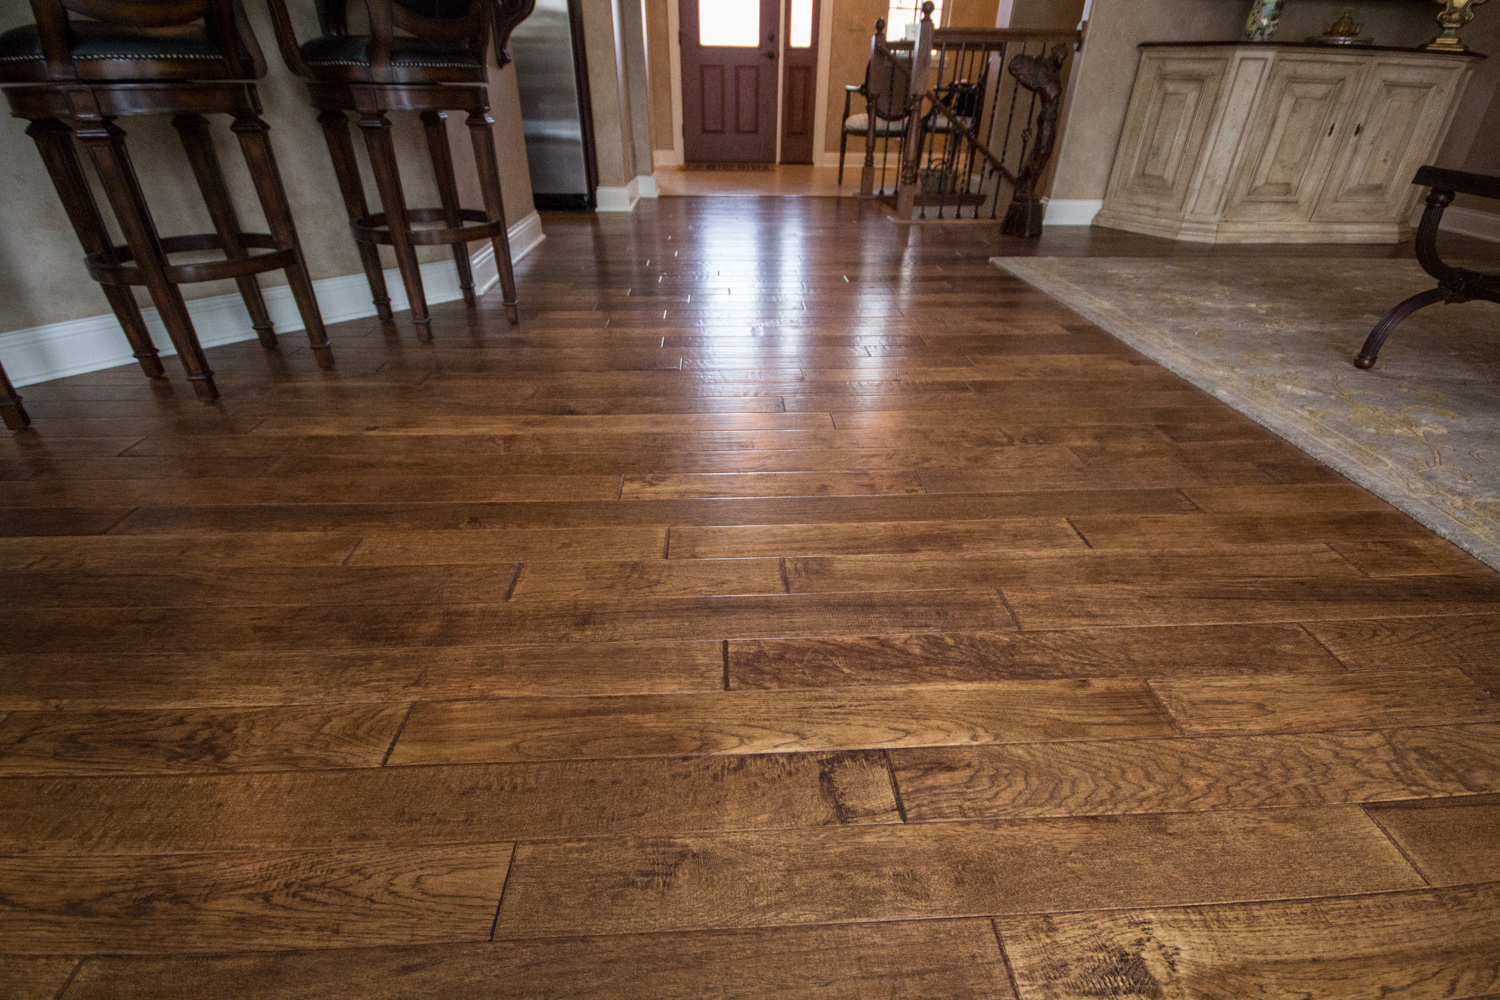 Klm builders inc quick review on flooring options for for Hardwood floor covering